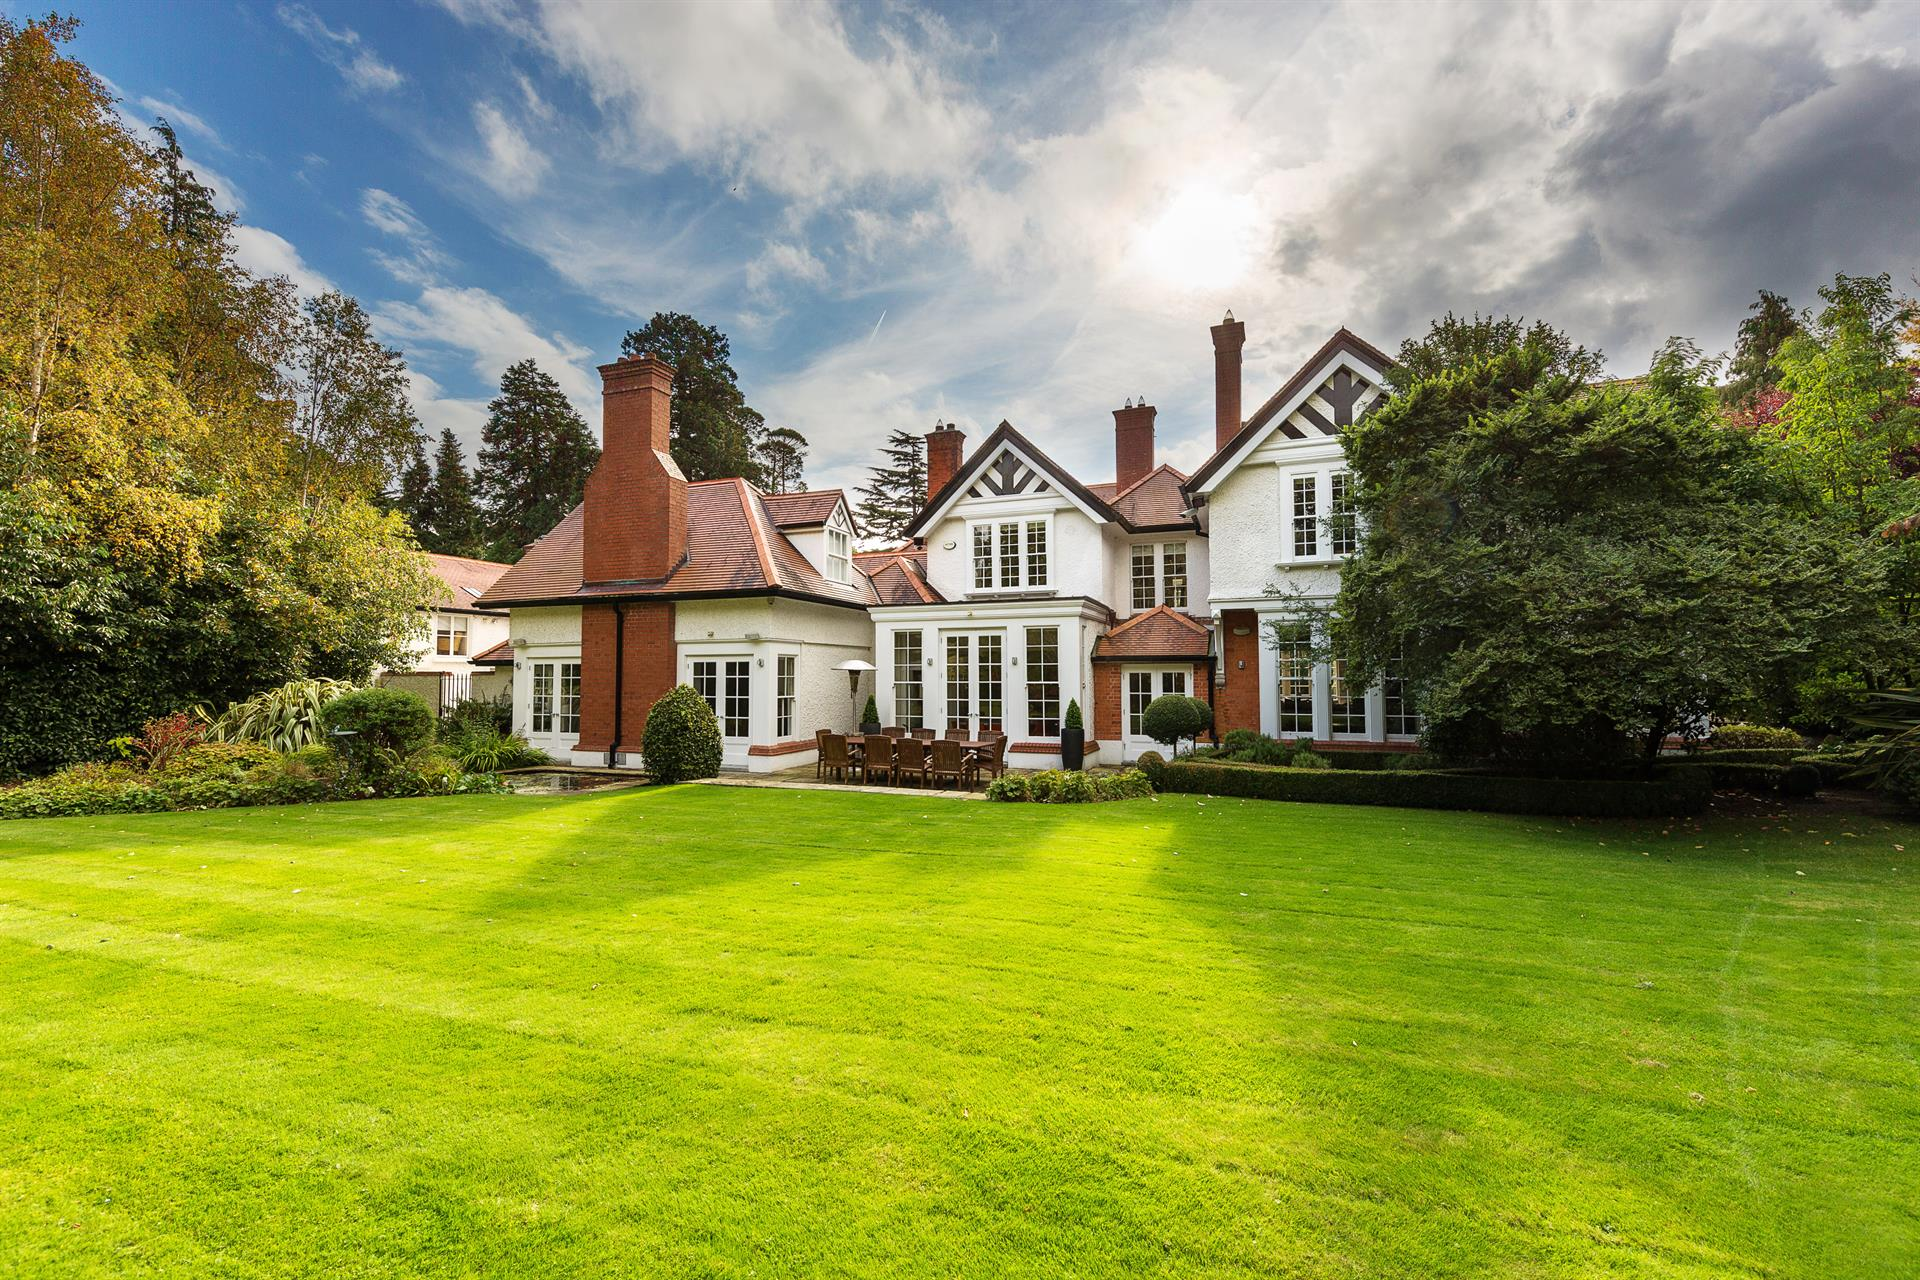 Kenure, an elegant Victorian house on an acre of formal gardens in Foxrock, Dublin, blends period architecture with advanced high-tech features, including an AMX Sound system throughout.